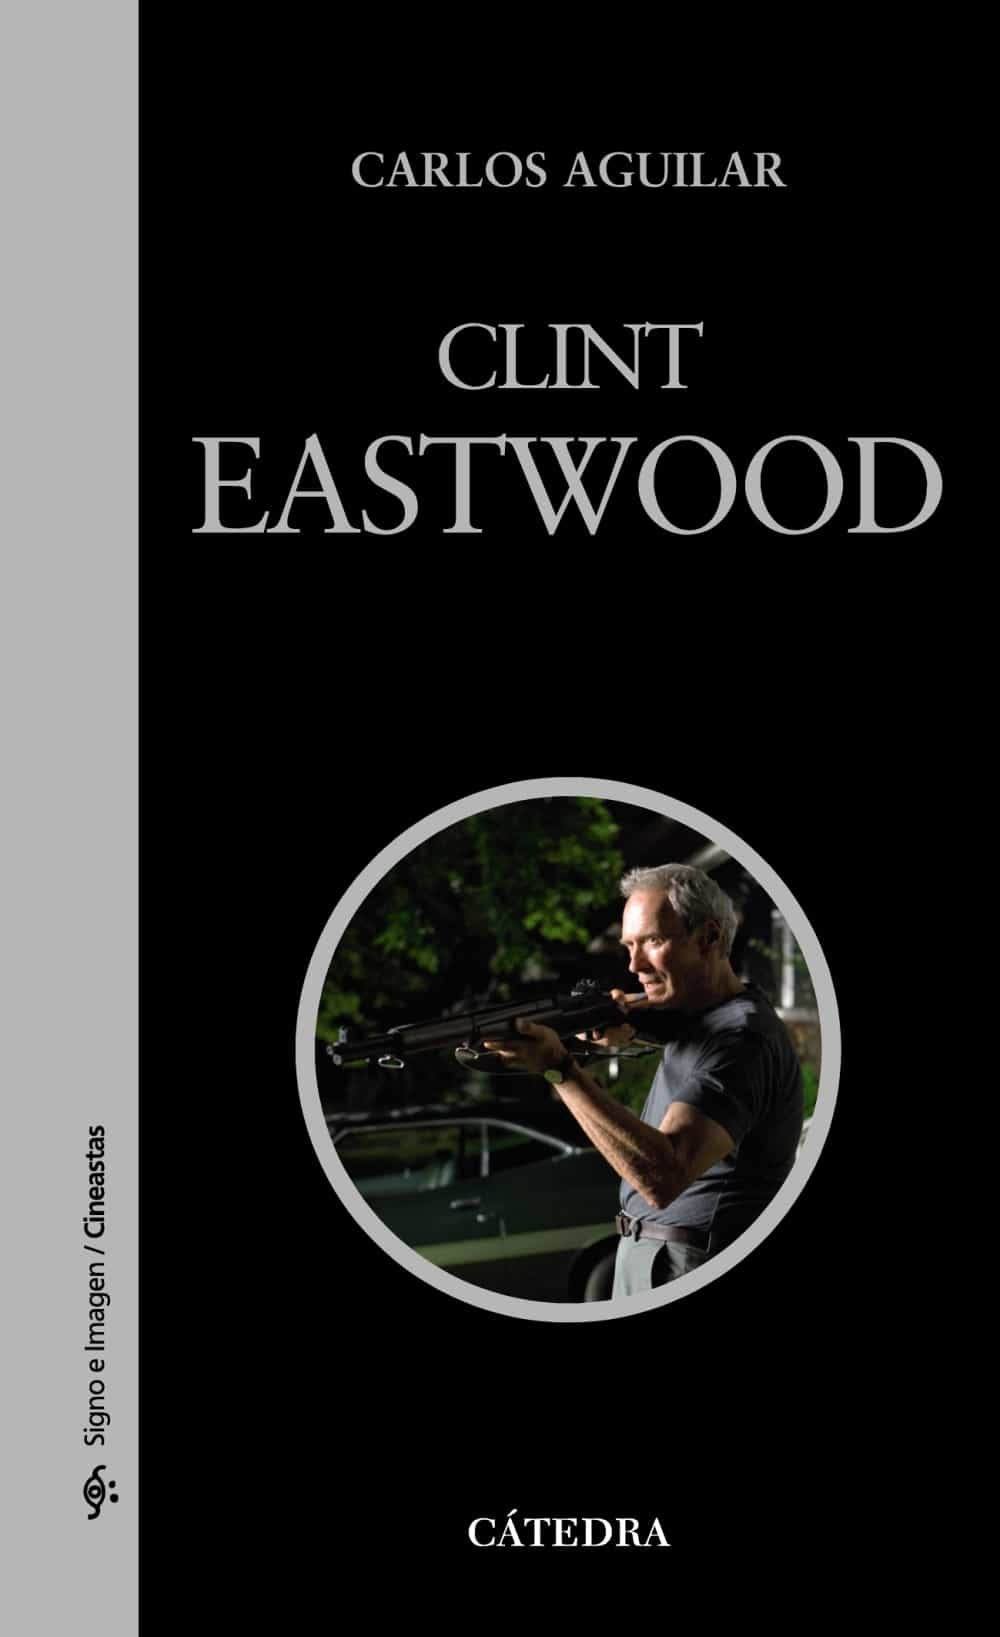 Clint Eastwood - Aguilar Carlos (coord.)